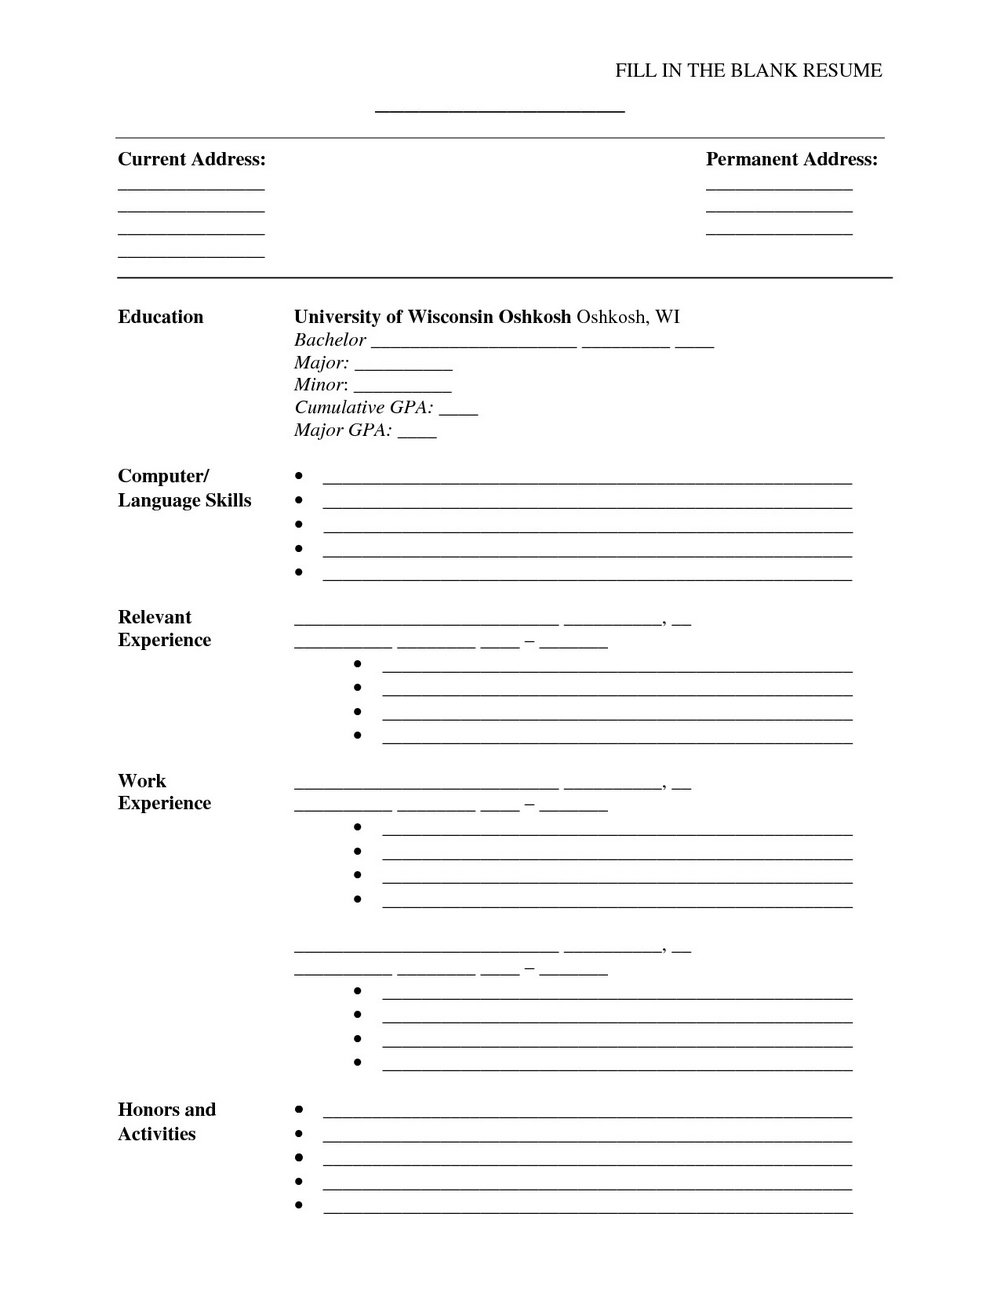 Fill In The Blank Resume Worksheet